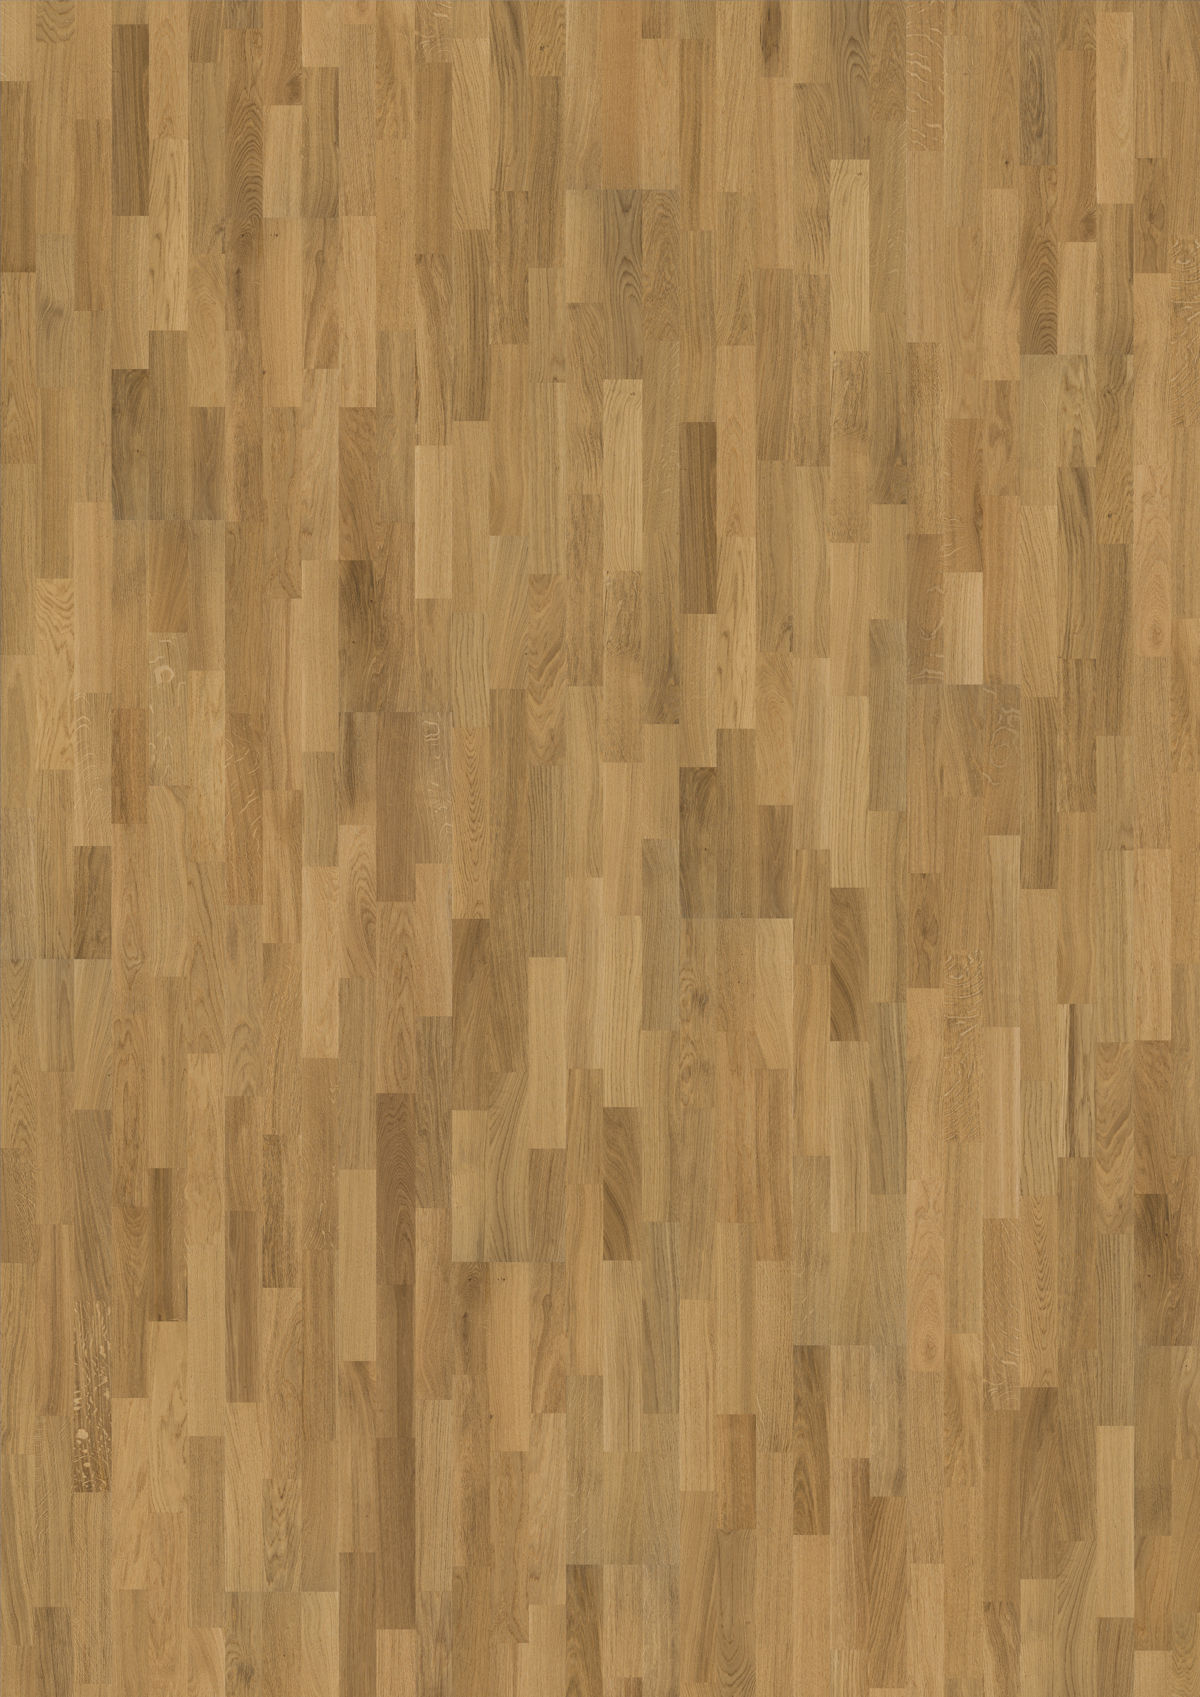 kahrs oak siena engineered wood flooring. Black Bedroom Furniture Sets. Home Design Ideas